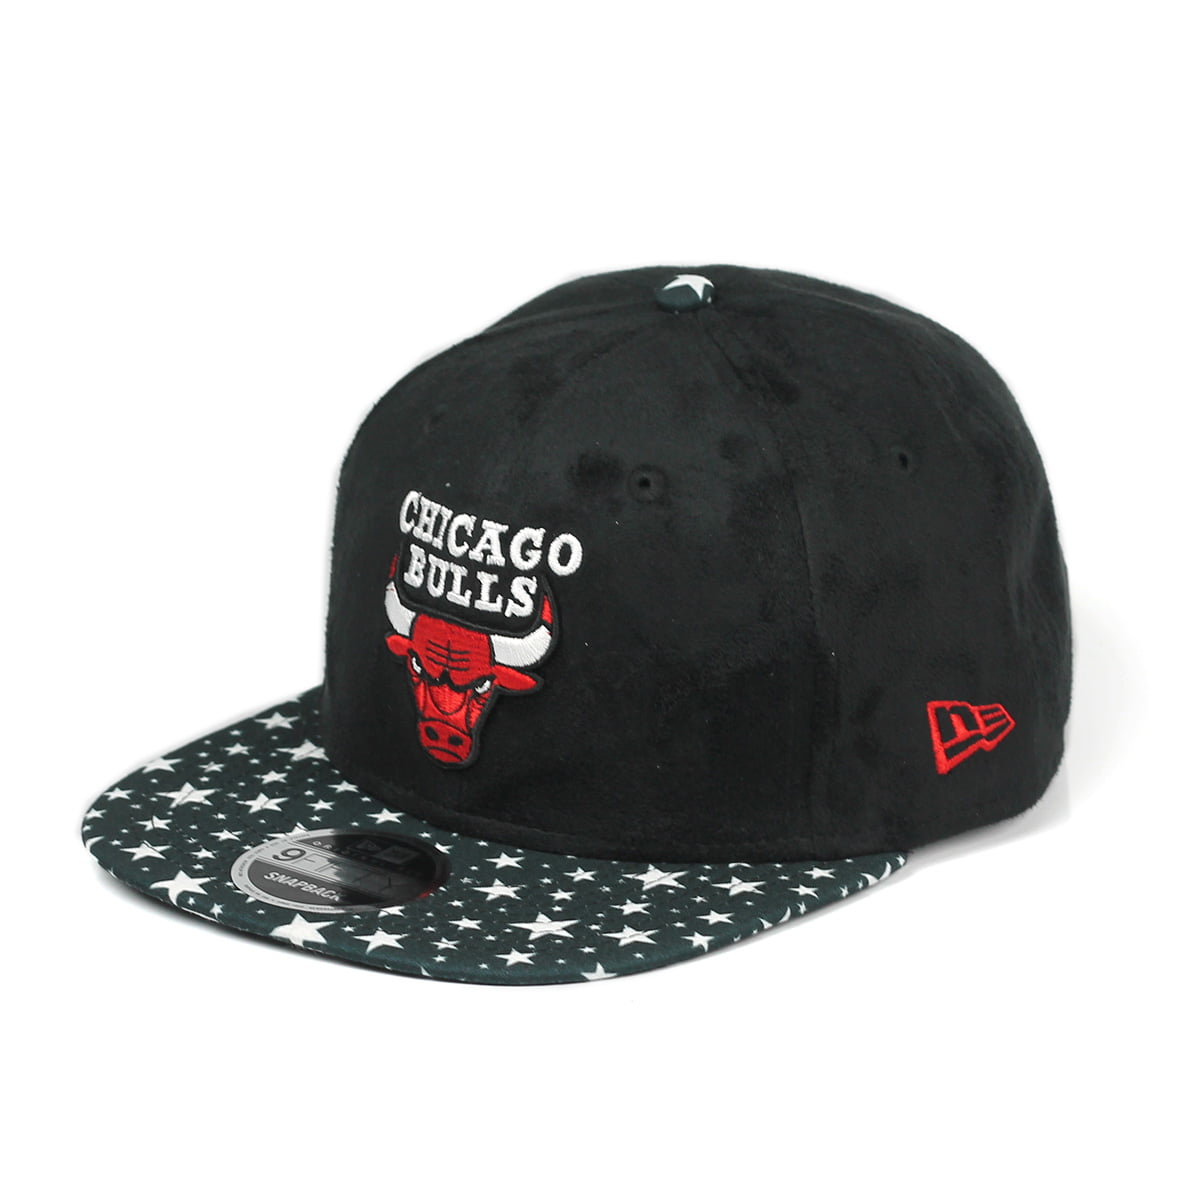 Bone Chicago Bulls New Era 9fifty star visor